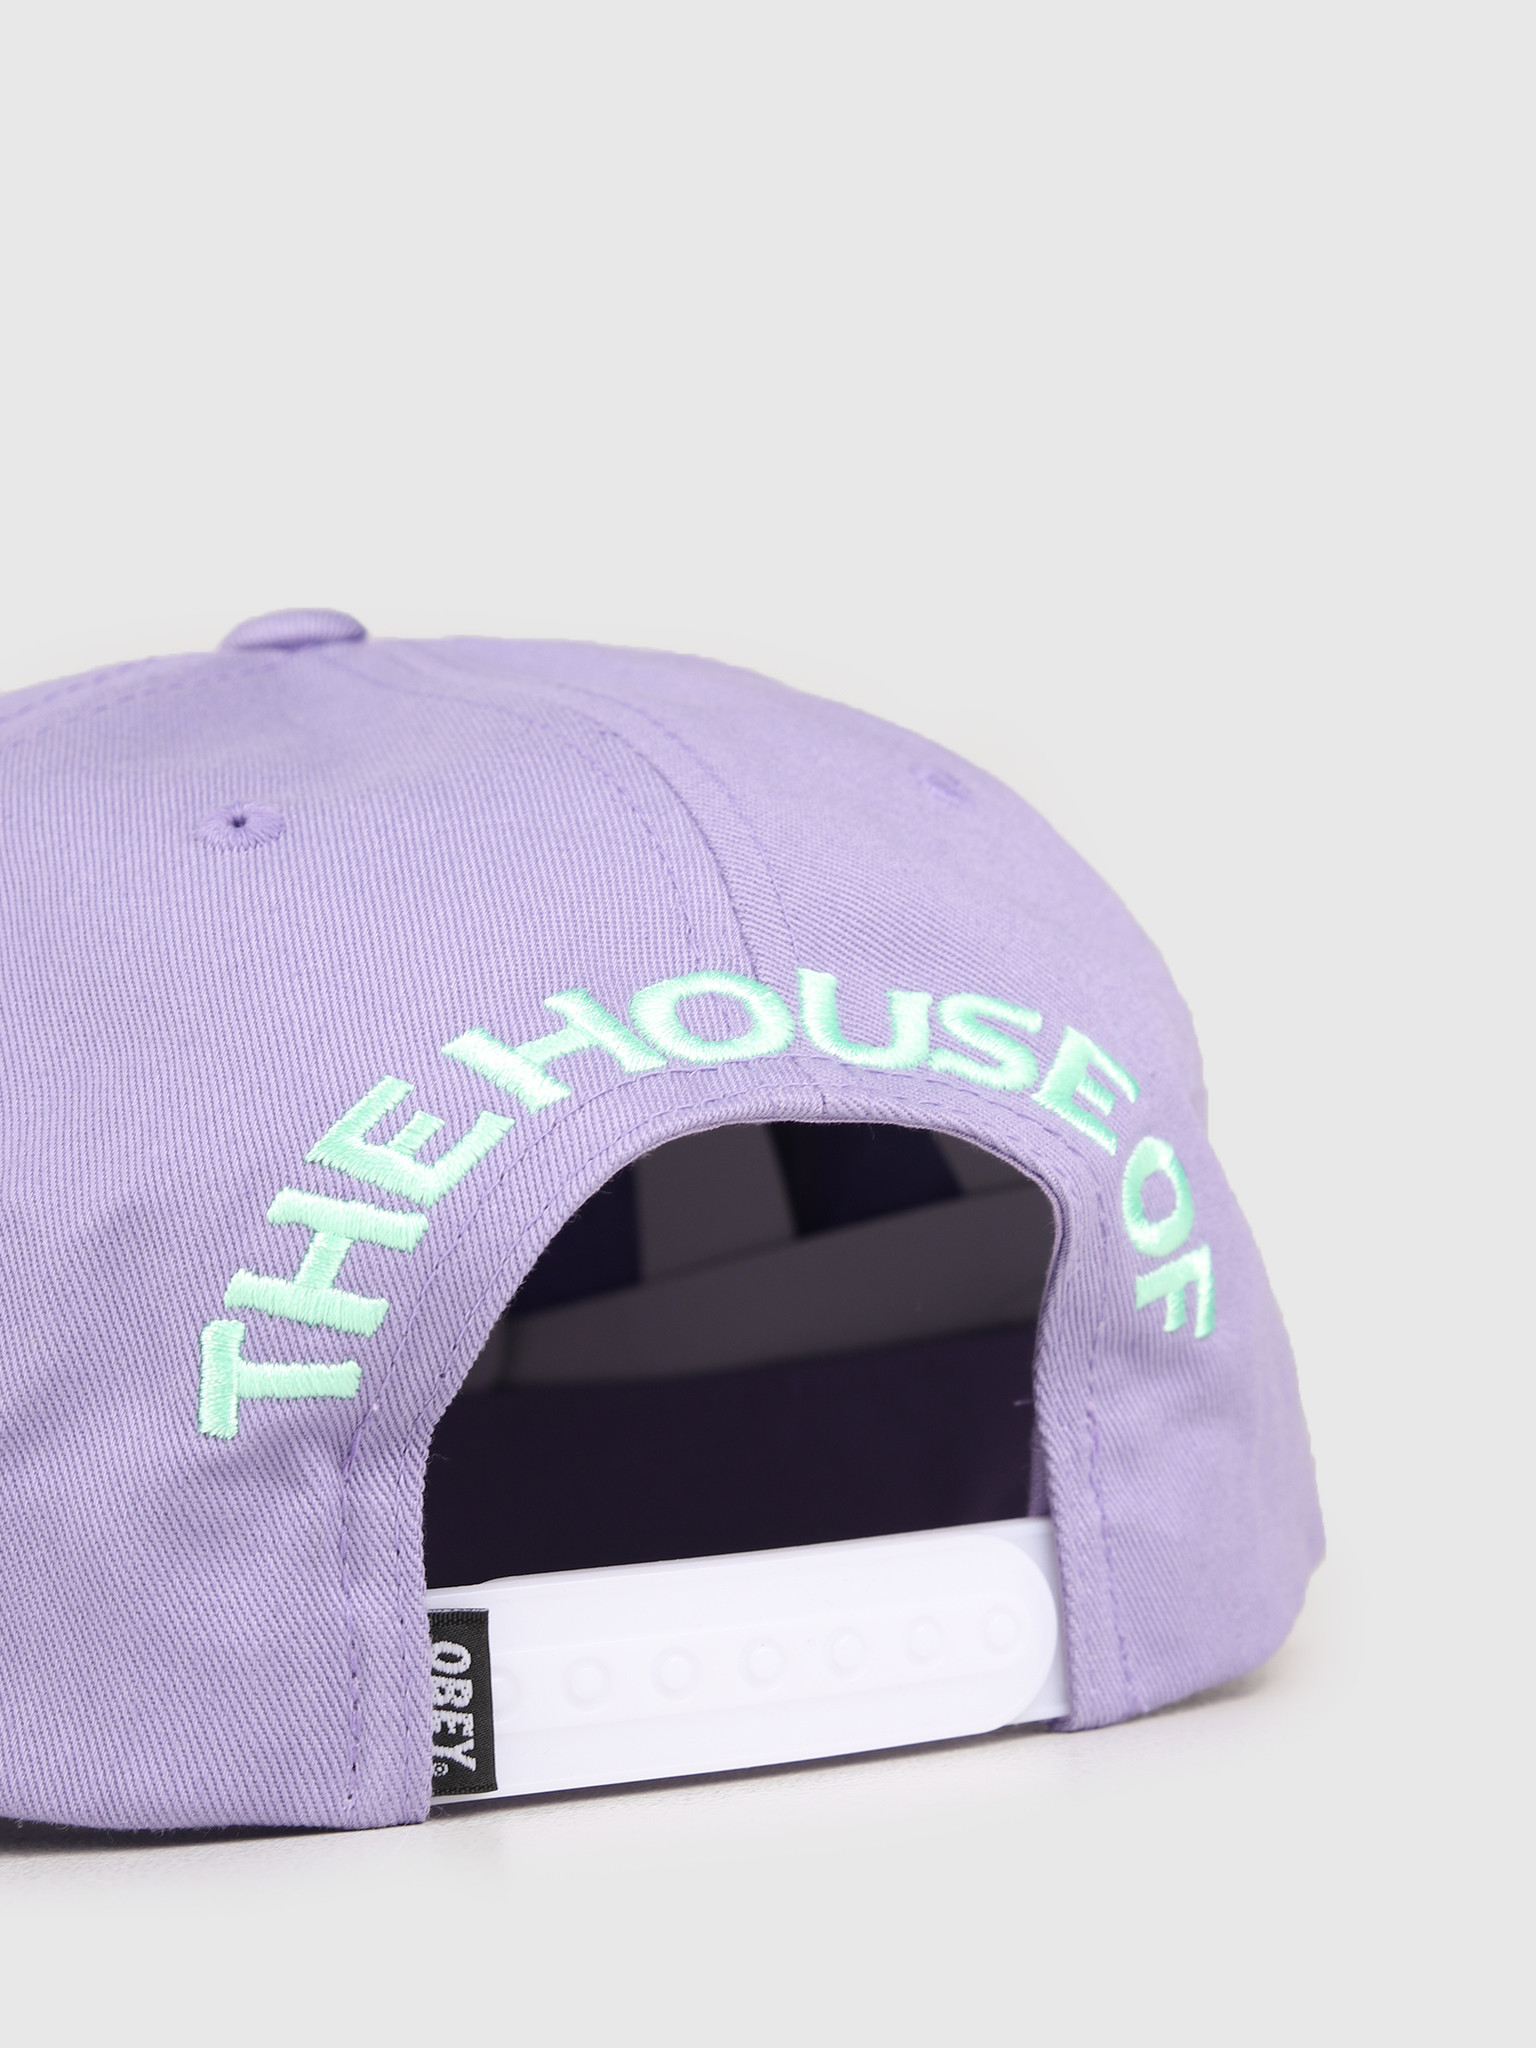 Obey Obey Low Unstructured Hat Lavender 100570096-LAV